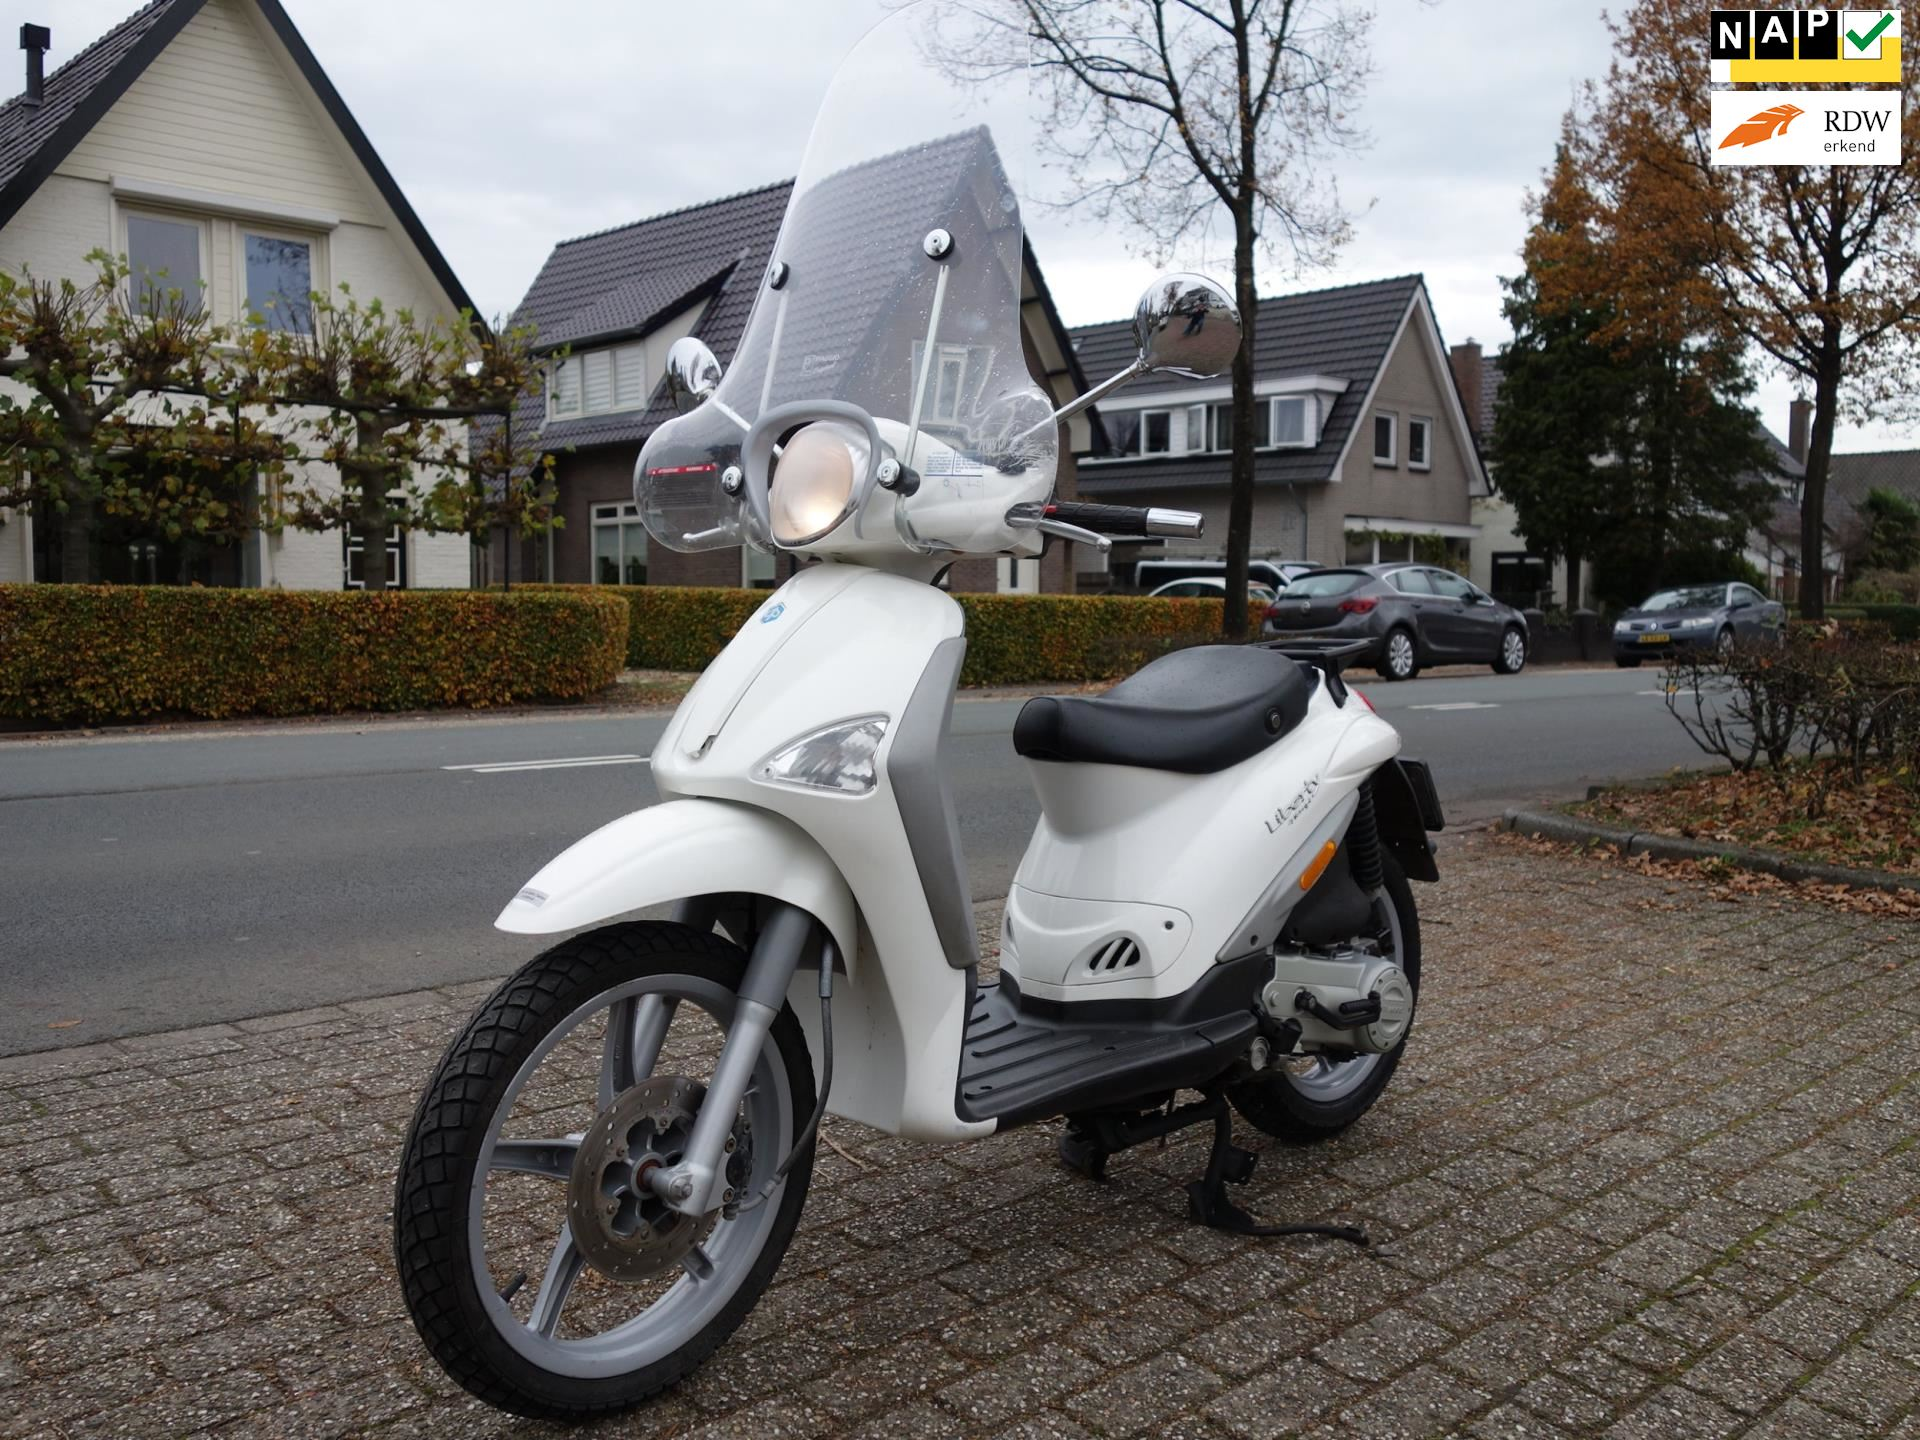 Piaggio Bromscooter occasion - De Vries Automotive Apeldoorn